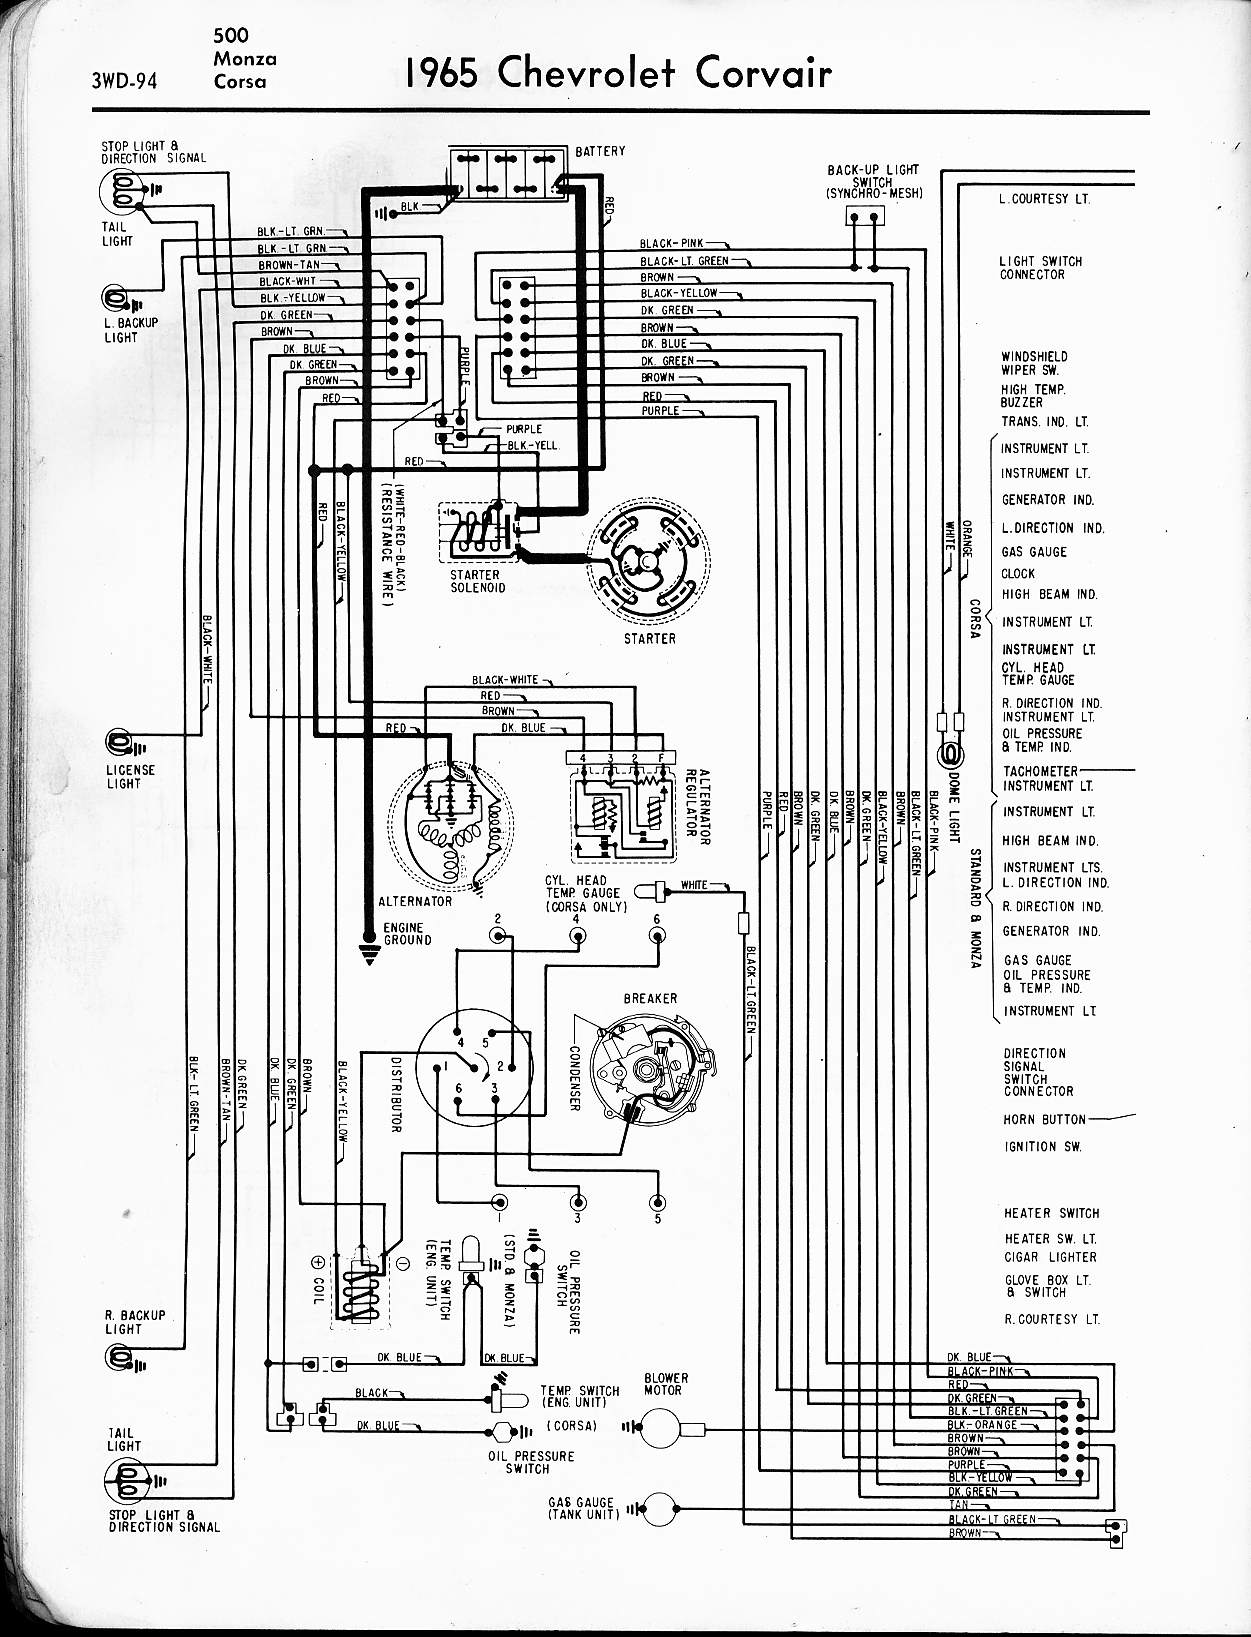 1968 Corvair Wiring Diagram Online Manuual Of 84 Camaro Ignition Alternator Wire Library Rh Insidestralsund De 1966 Switch